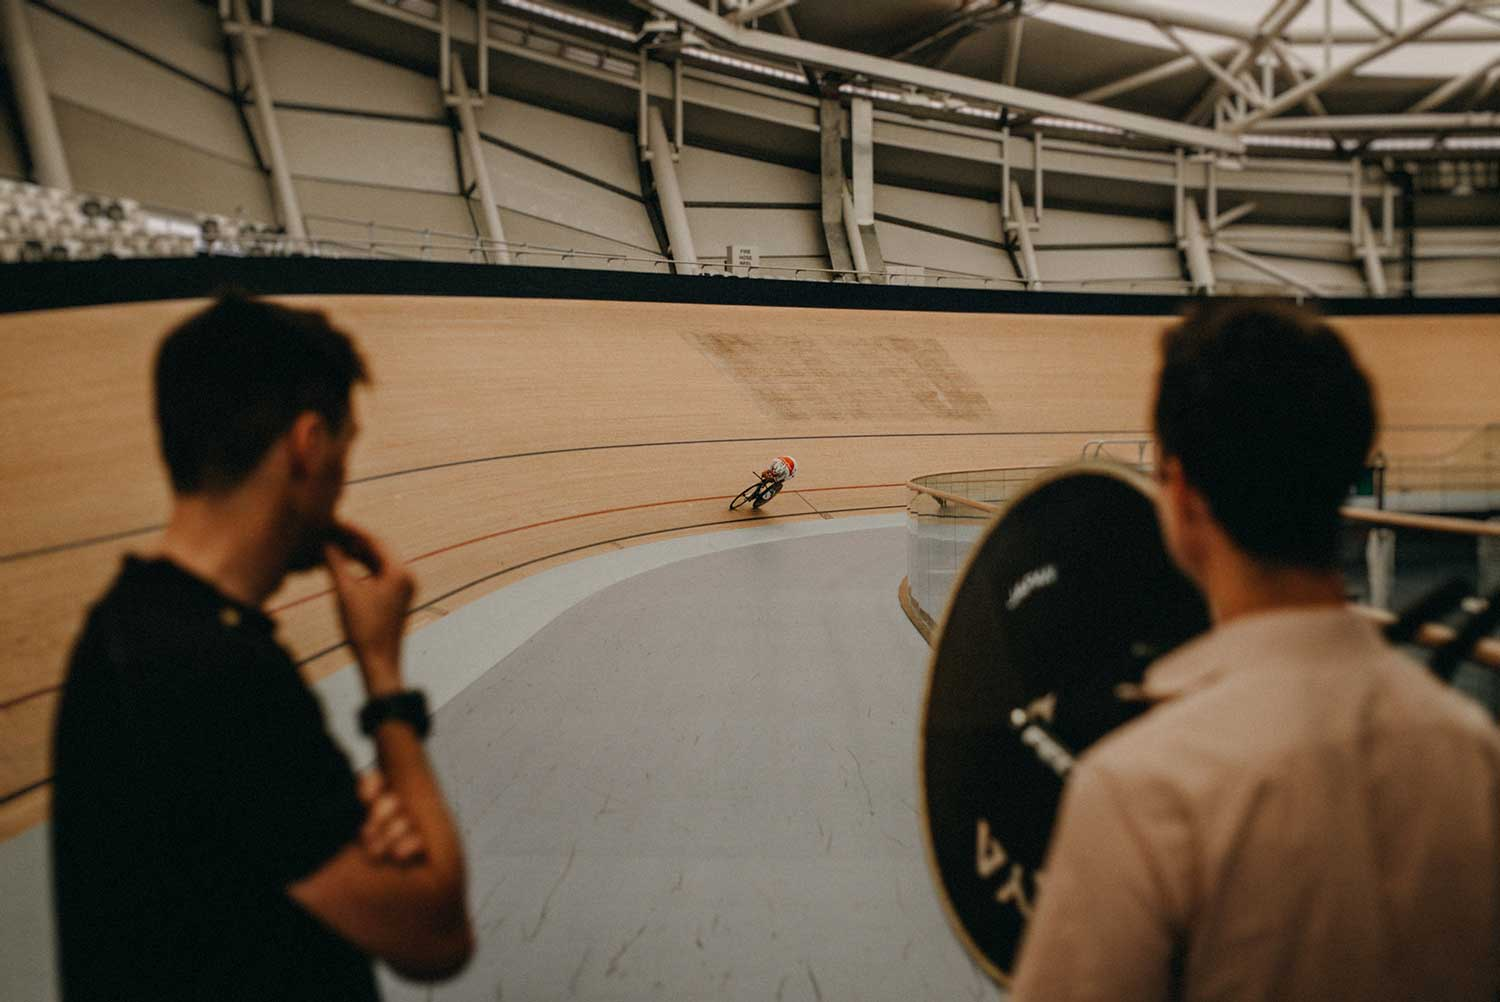 Japanese cyclist training for individual time trail in velodrome with coaches watching